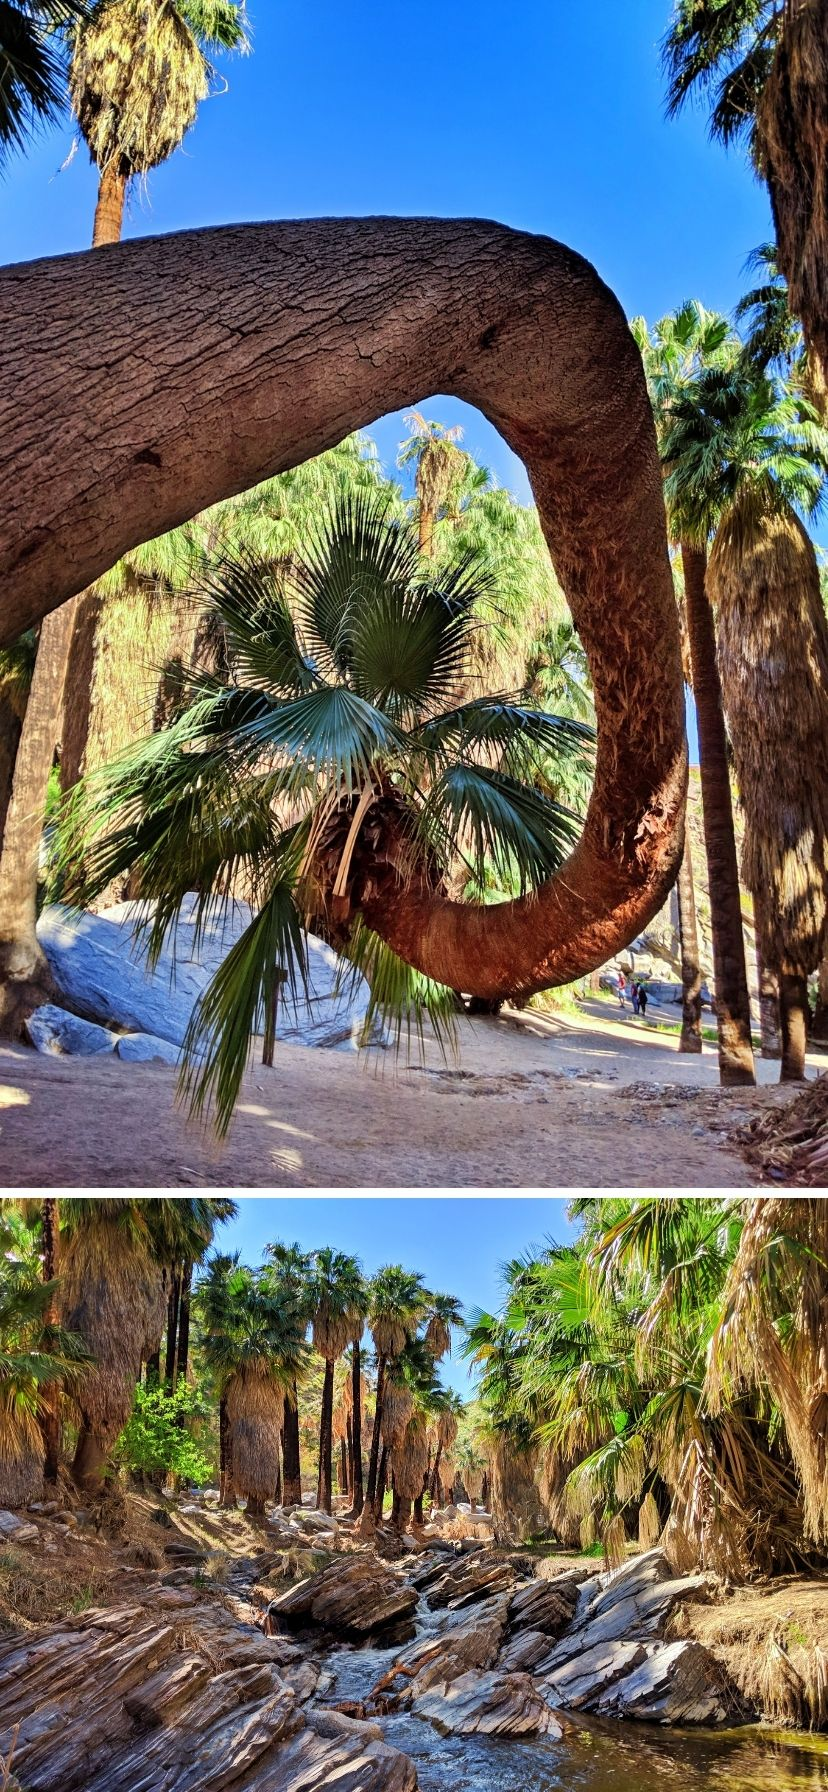 Curved palms in the groves along the oasis stream in Indian Canyons, Palm Springs